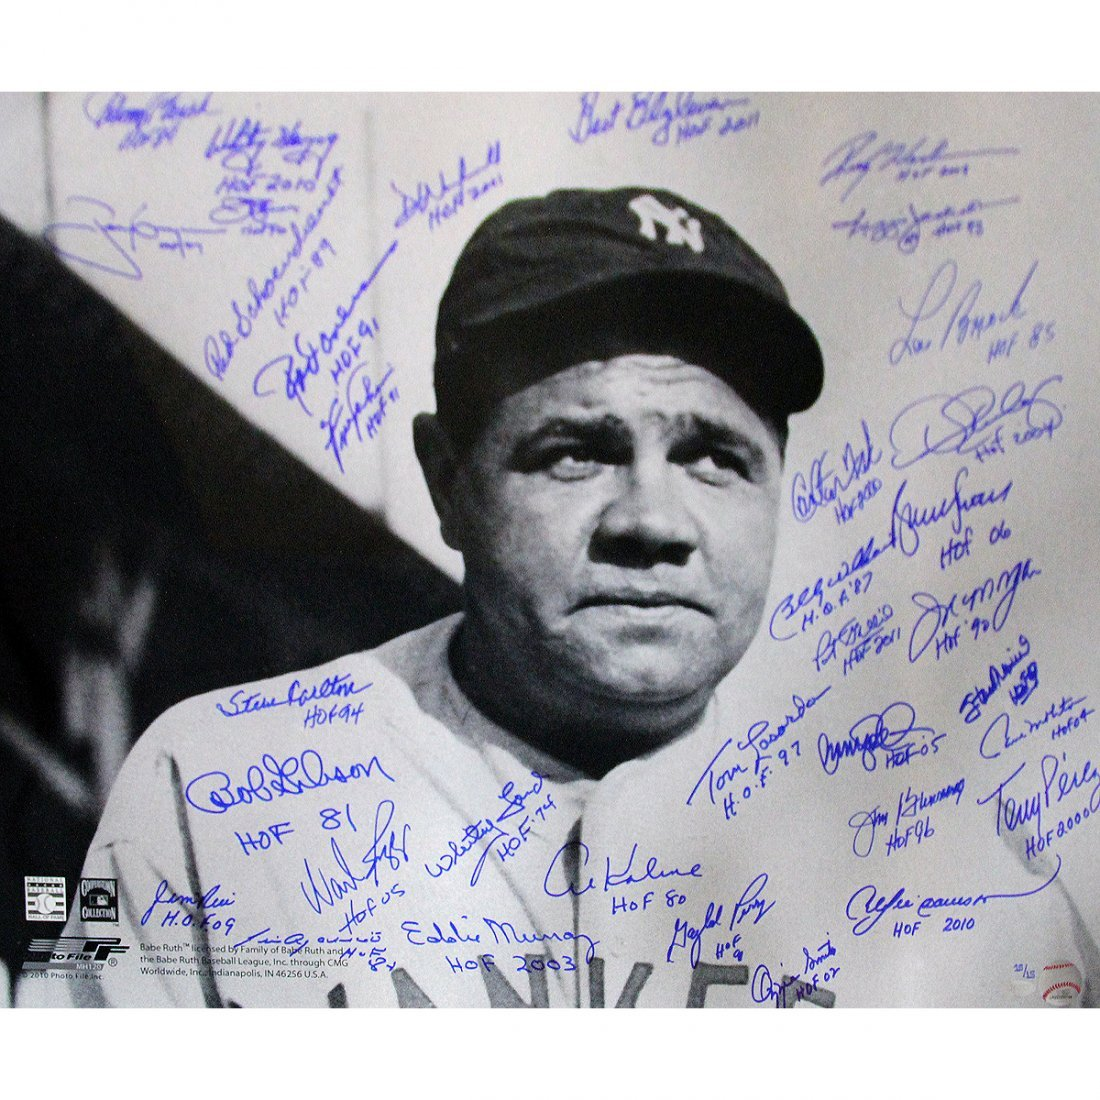 Babe Ruth Stare 20x24 Photo Multi Signed w/ HOF Insc. L